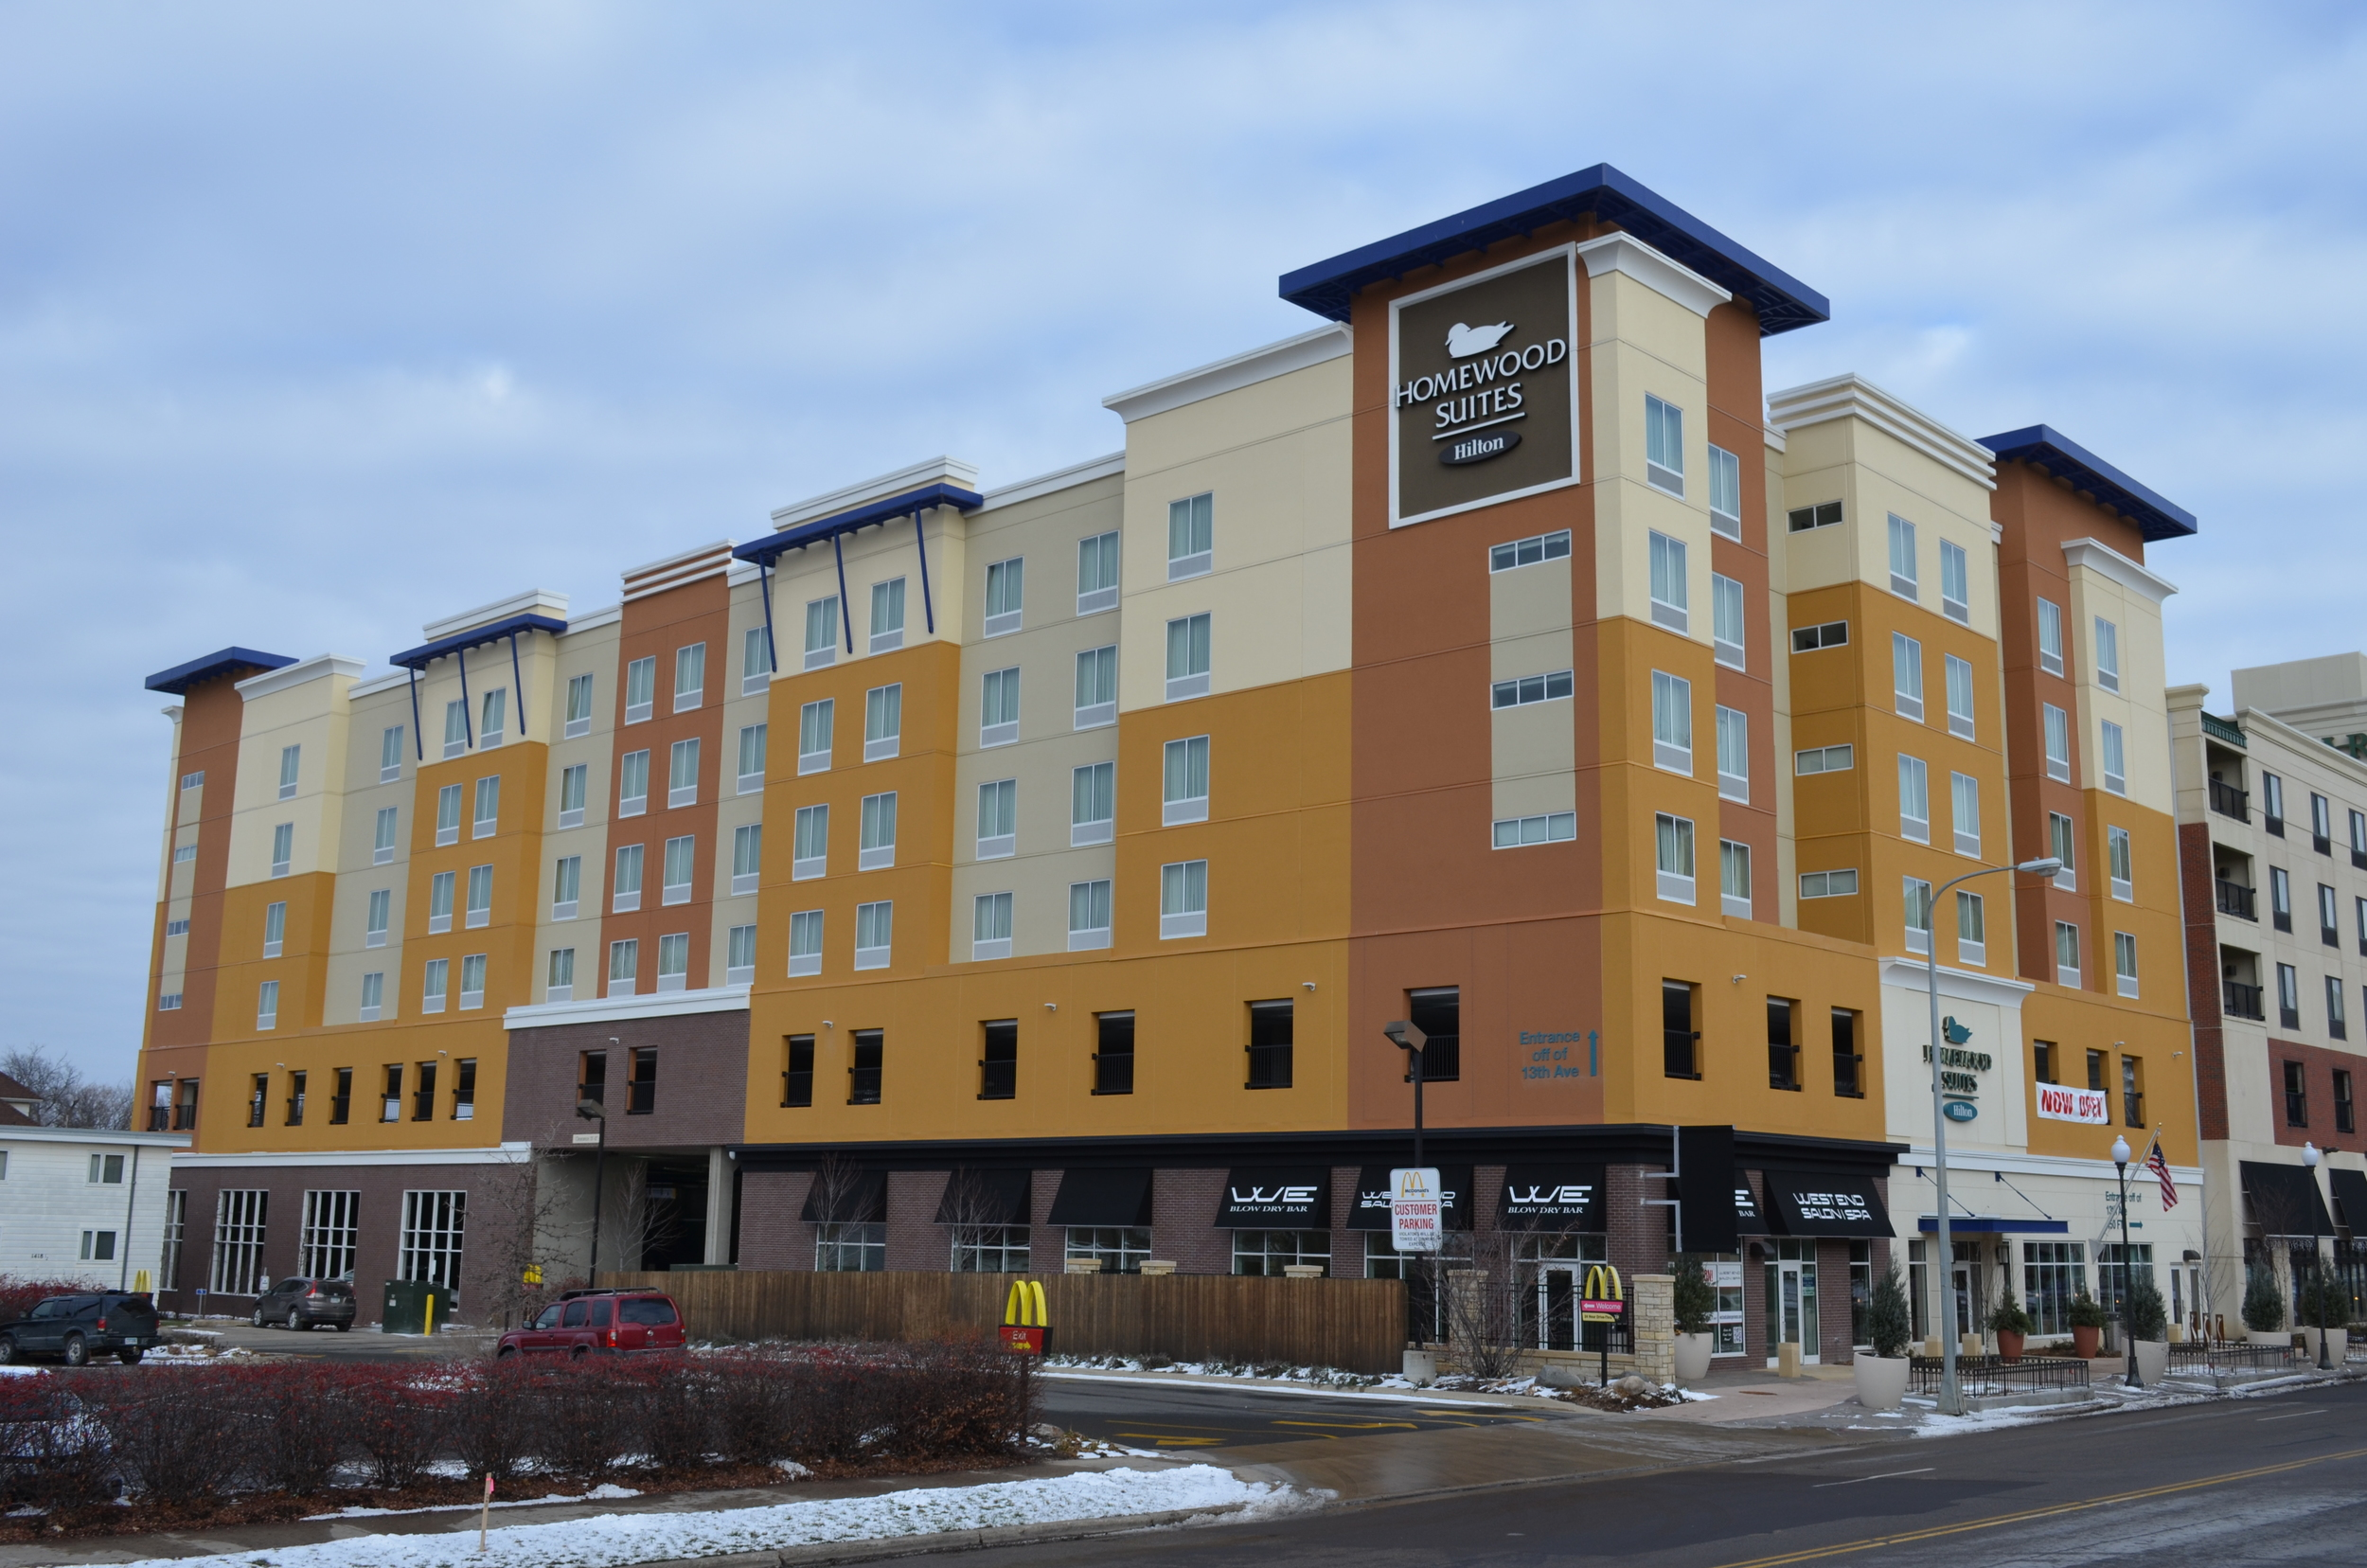 Outside view of the Homewood Suites by Hilton in Rochester, MN